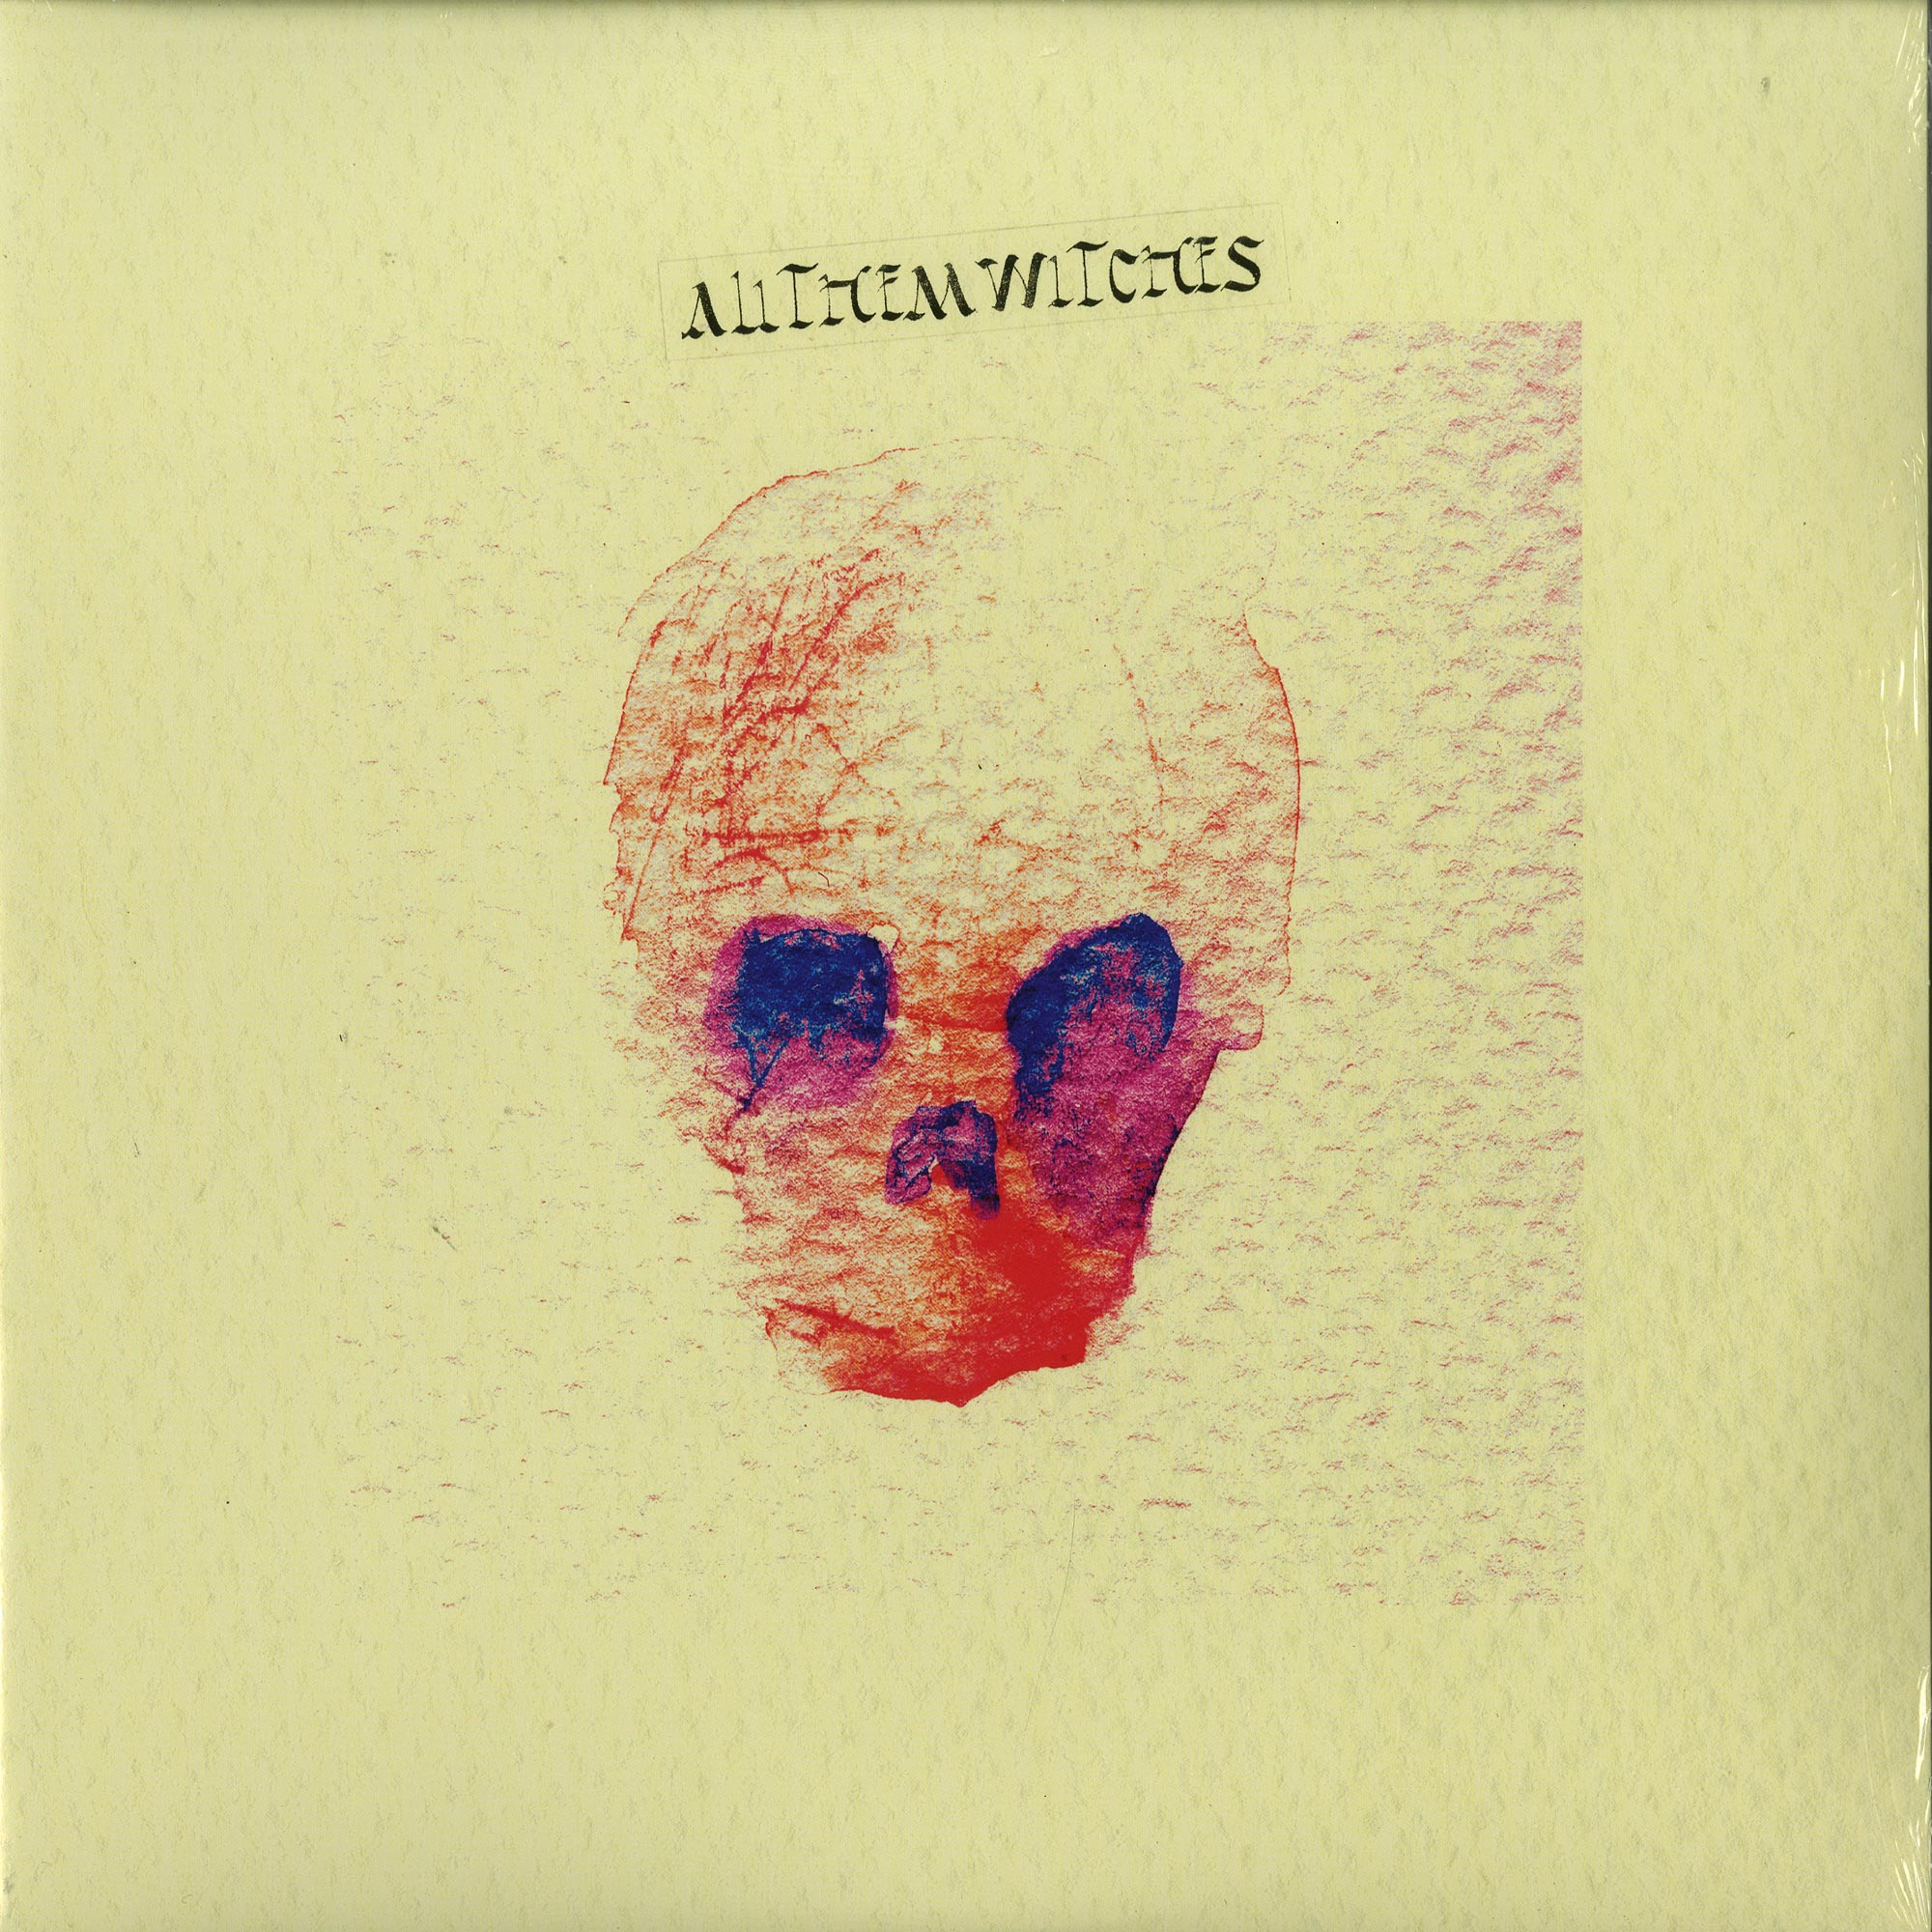 All Them Witches - ATW